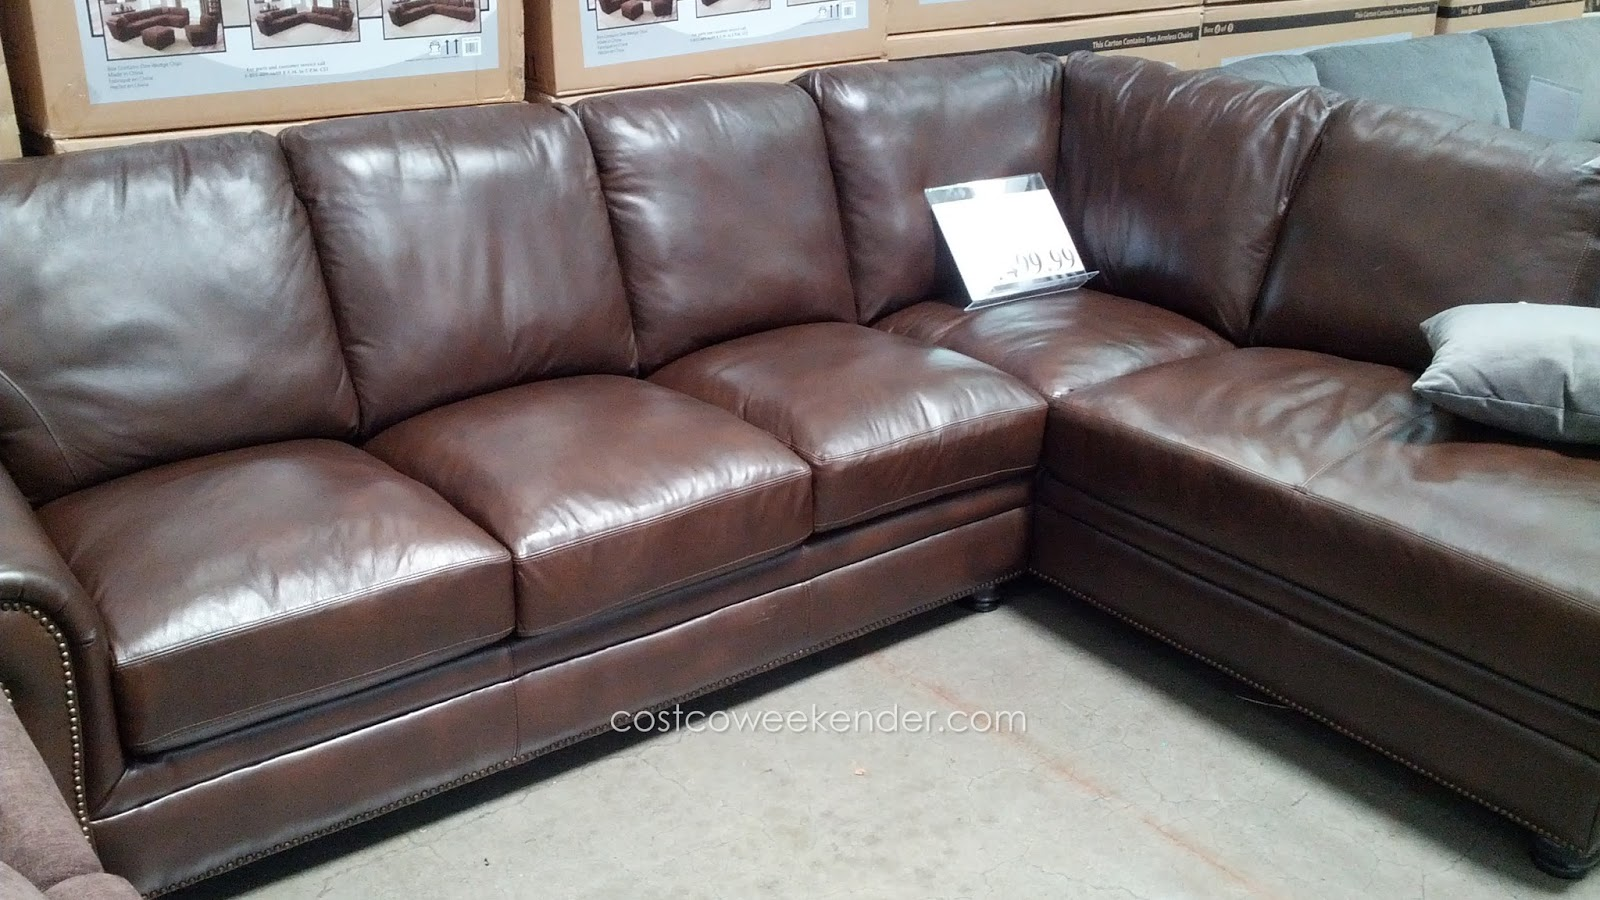 Marks Cohen Savoy 2 Piece Leather Sectional A Clic L Shaped Couch